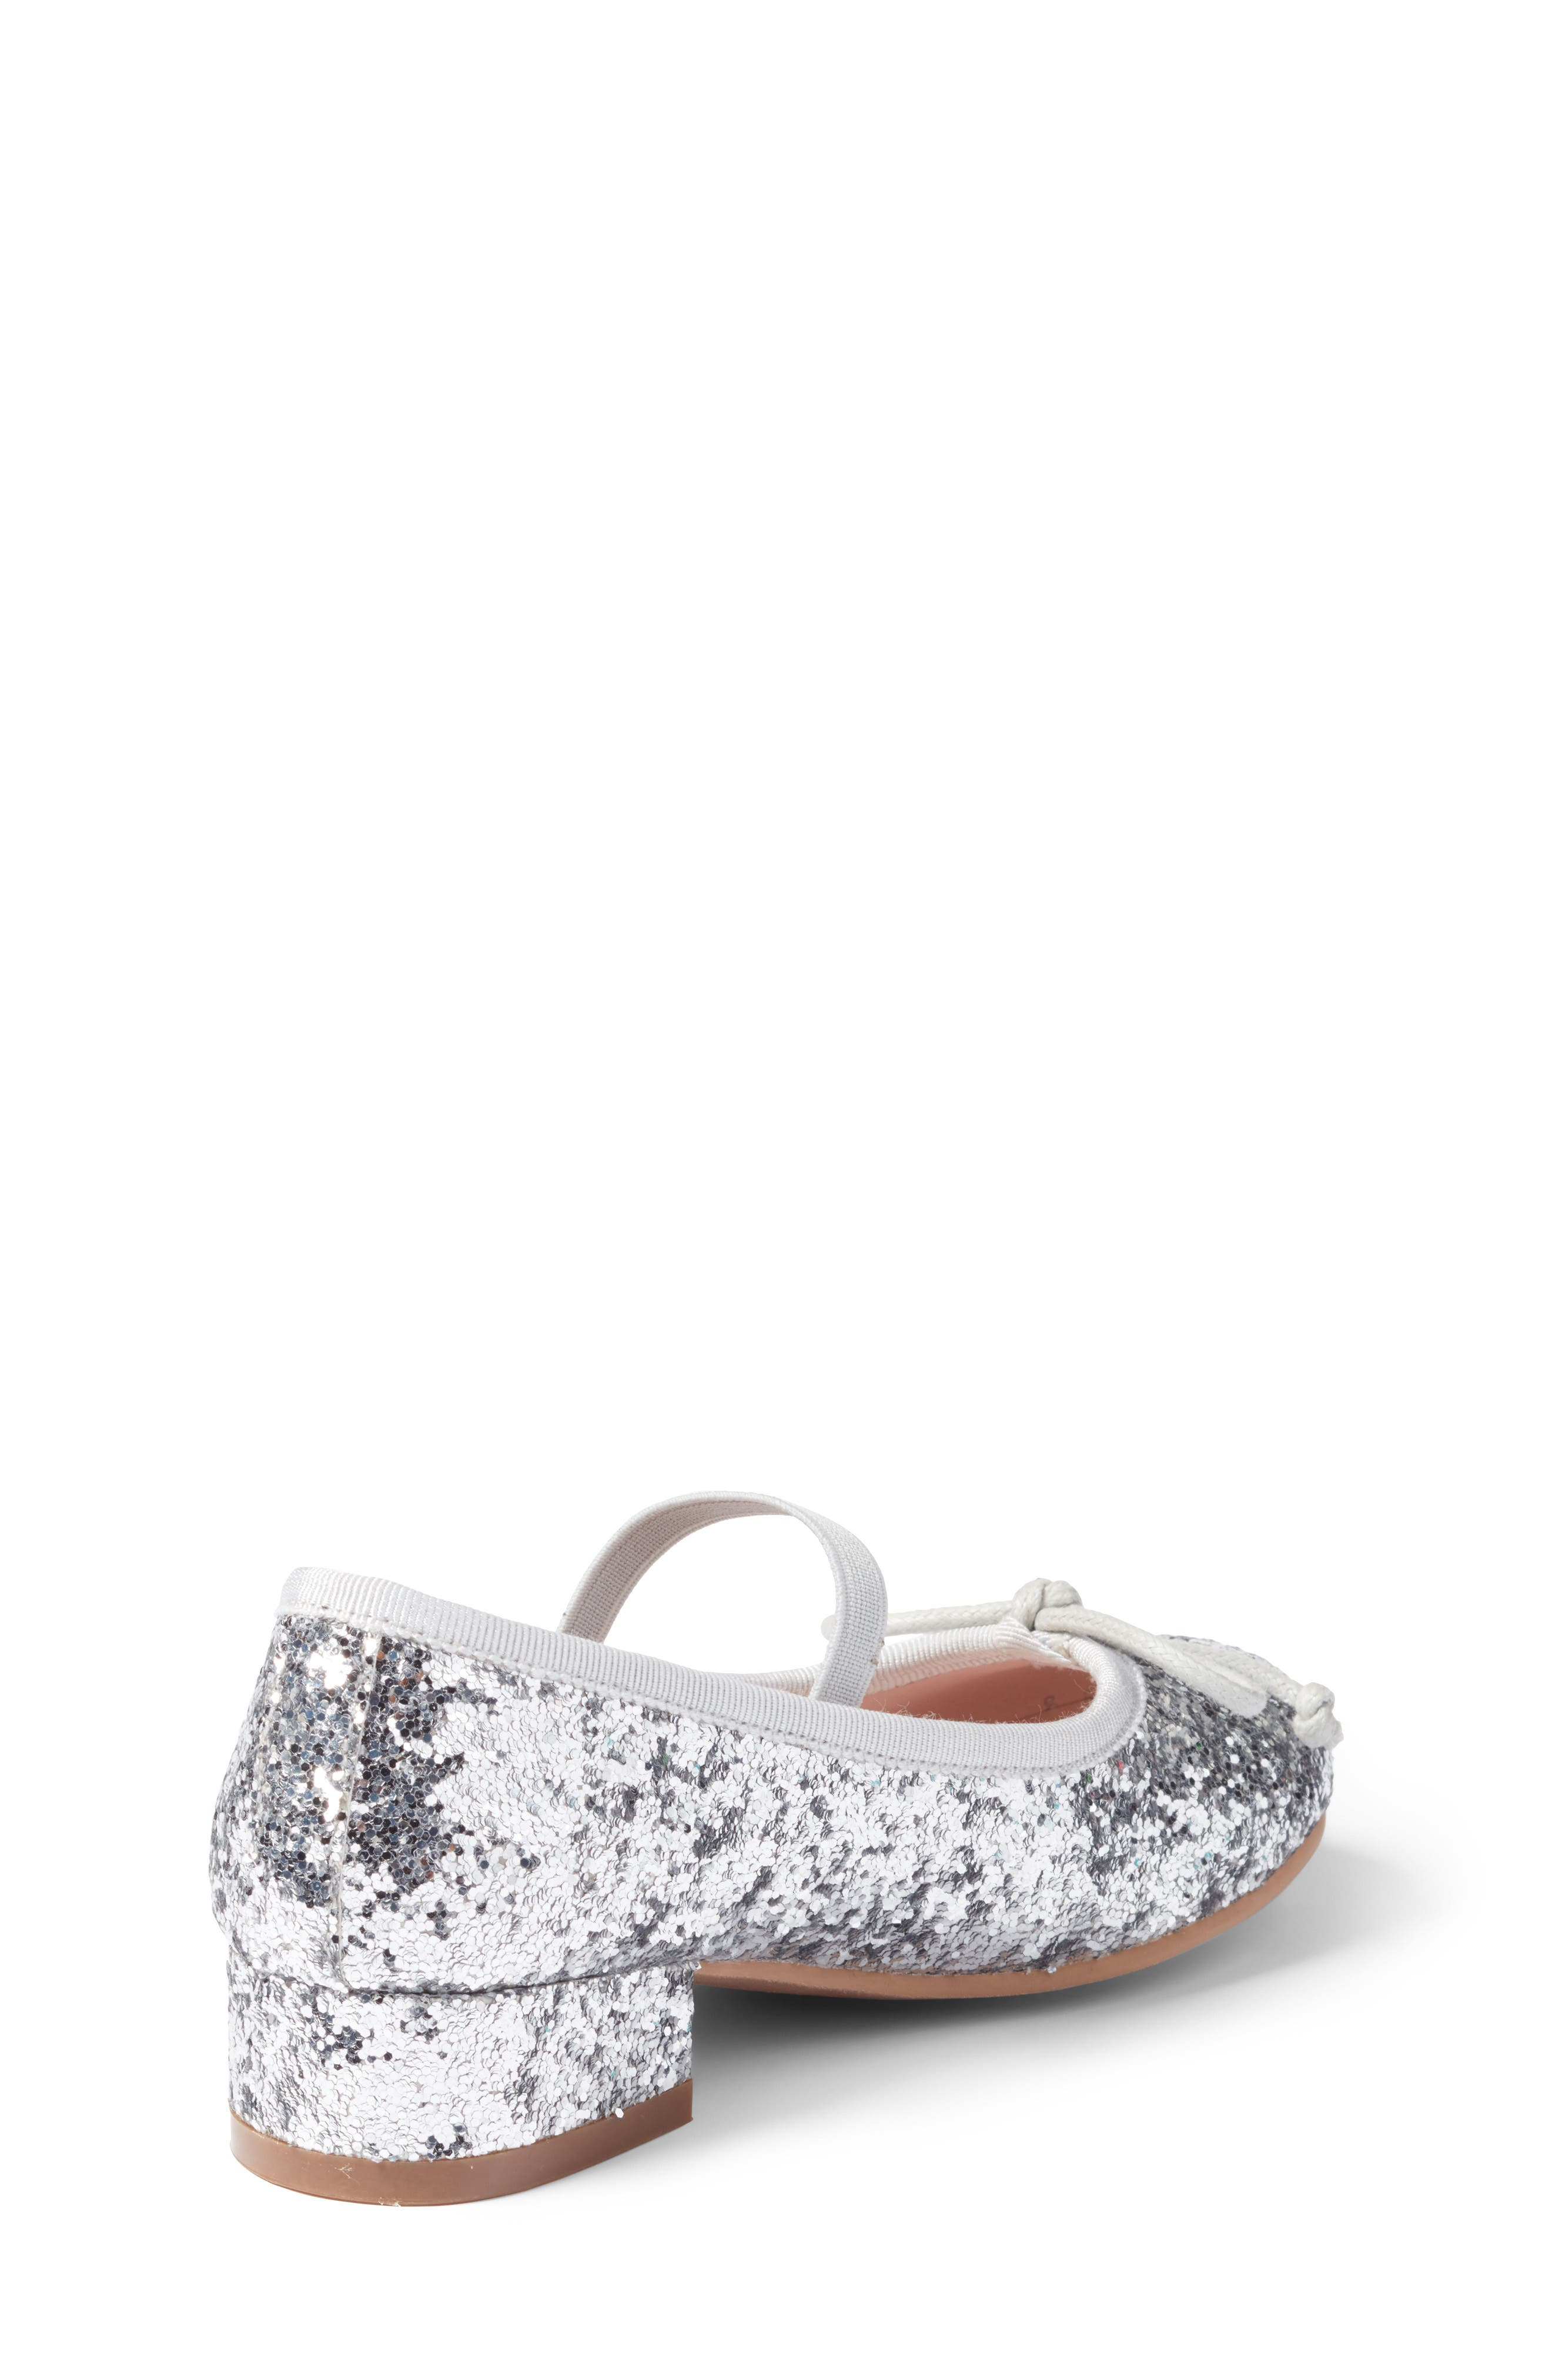 Hallie Glittery Mary Jane,                             Alternate thumbnail 2, color,                             Silver Glitter Faux Leather